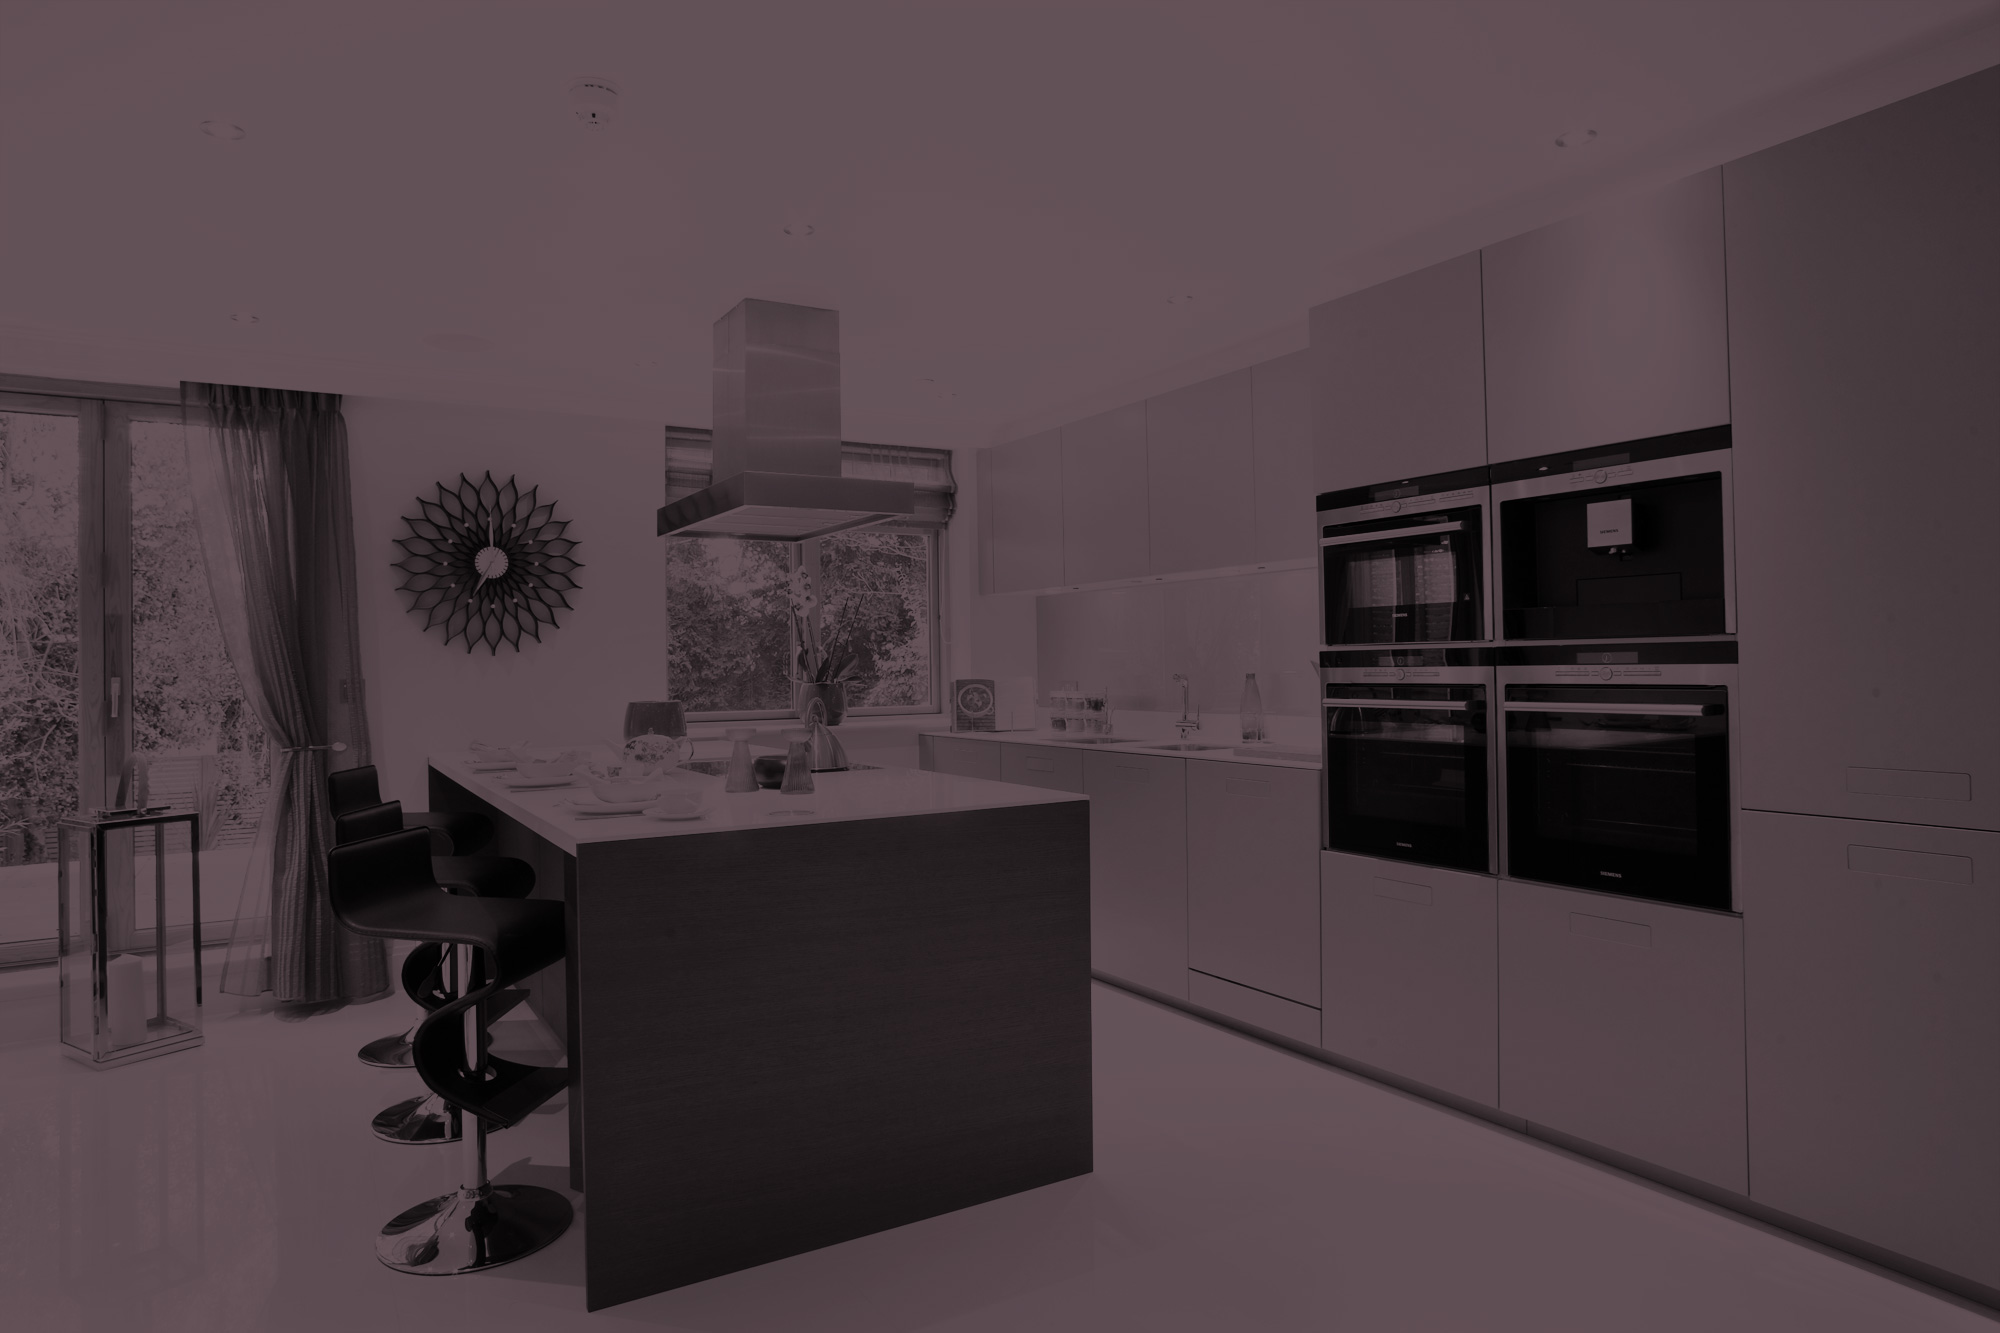 CAWD_CityandWest_Kitchen1